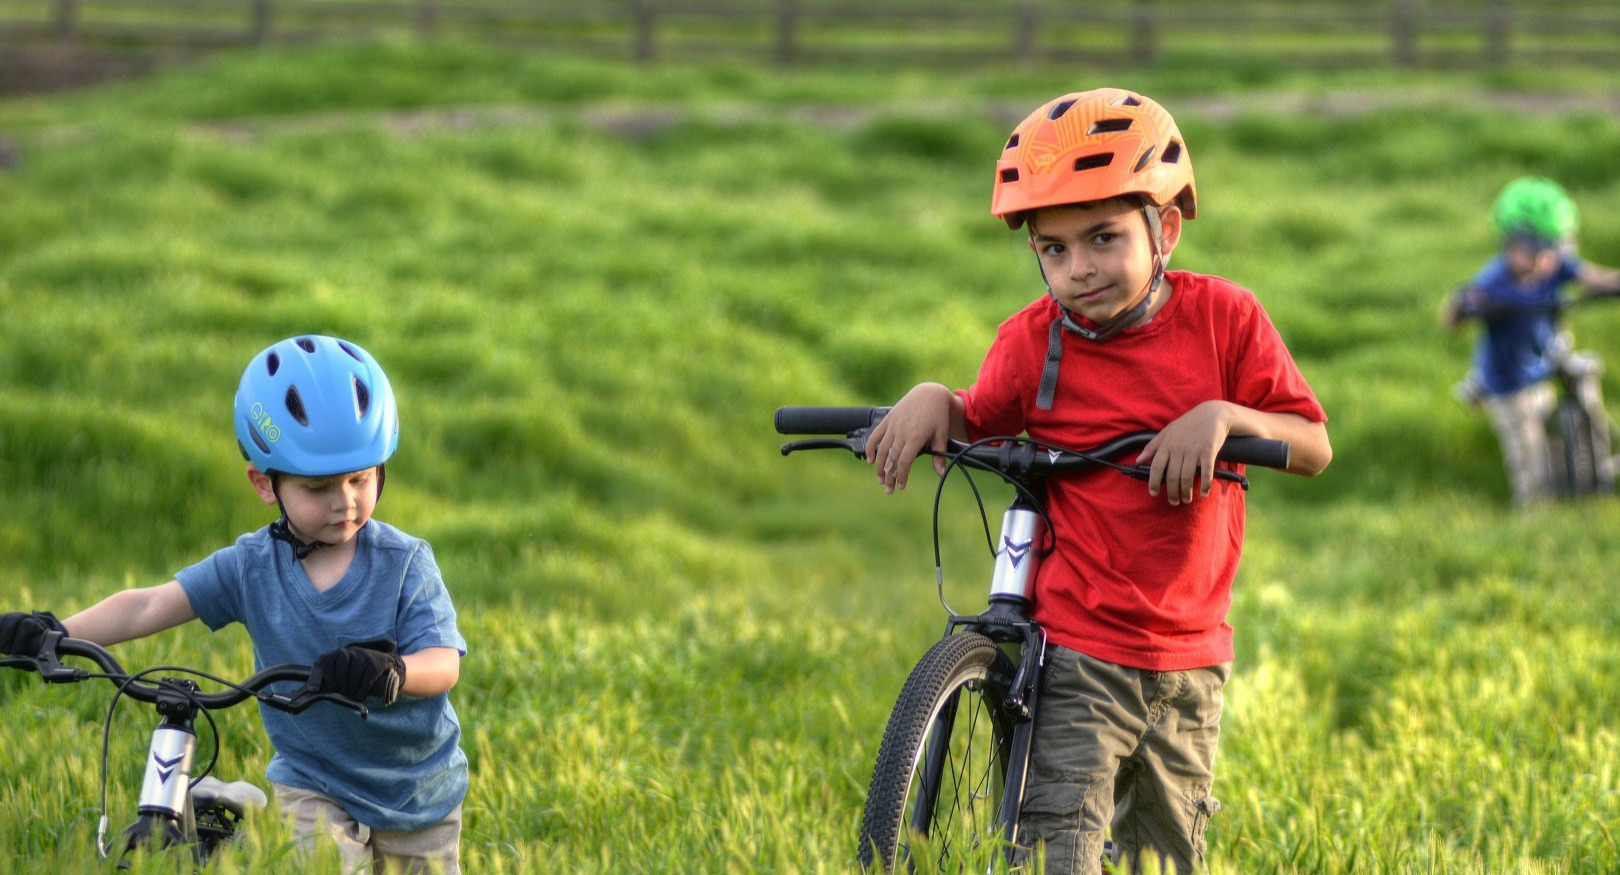 Two boys leaning on bikes in a long grass field.